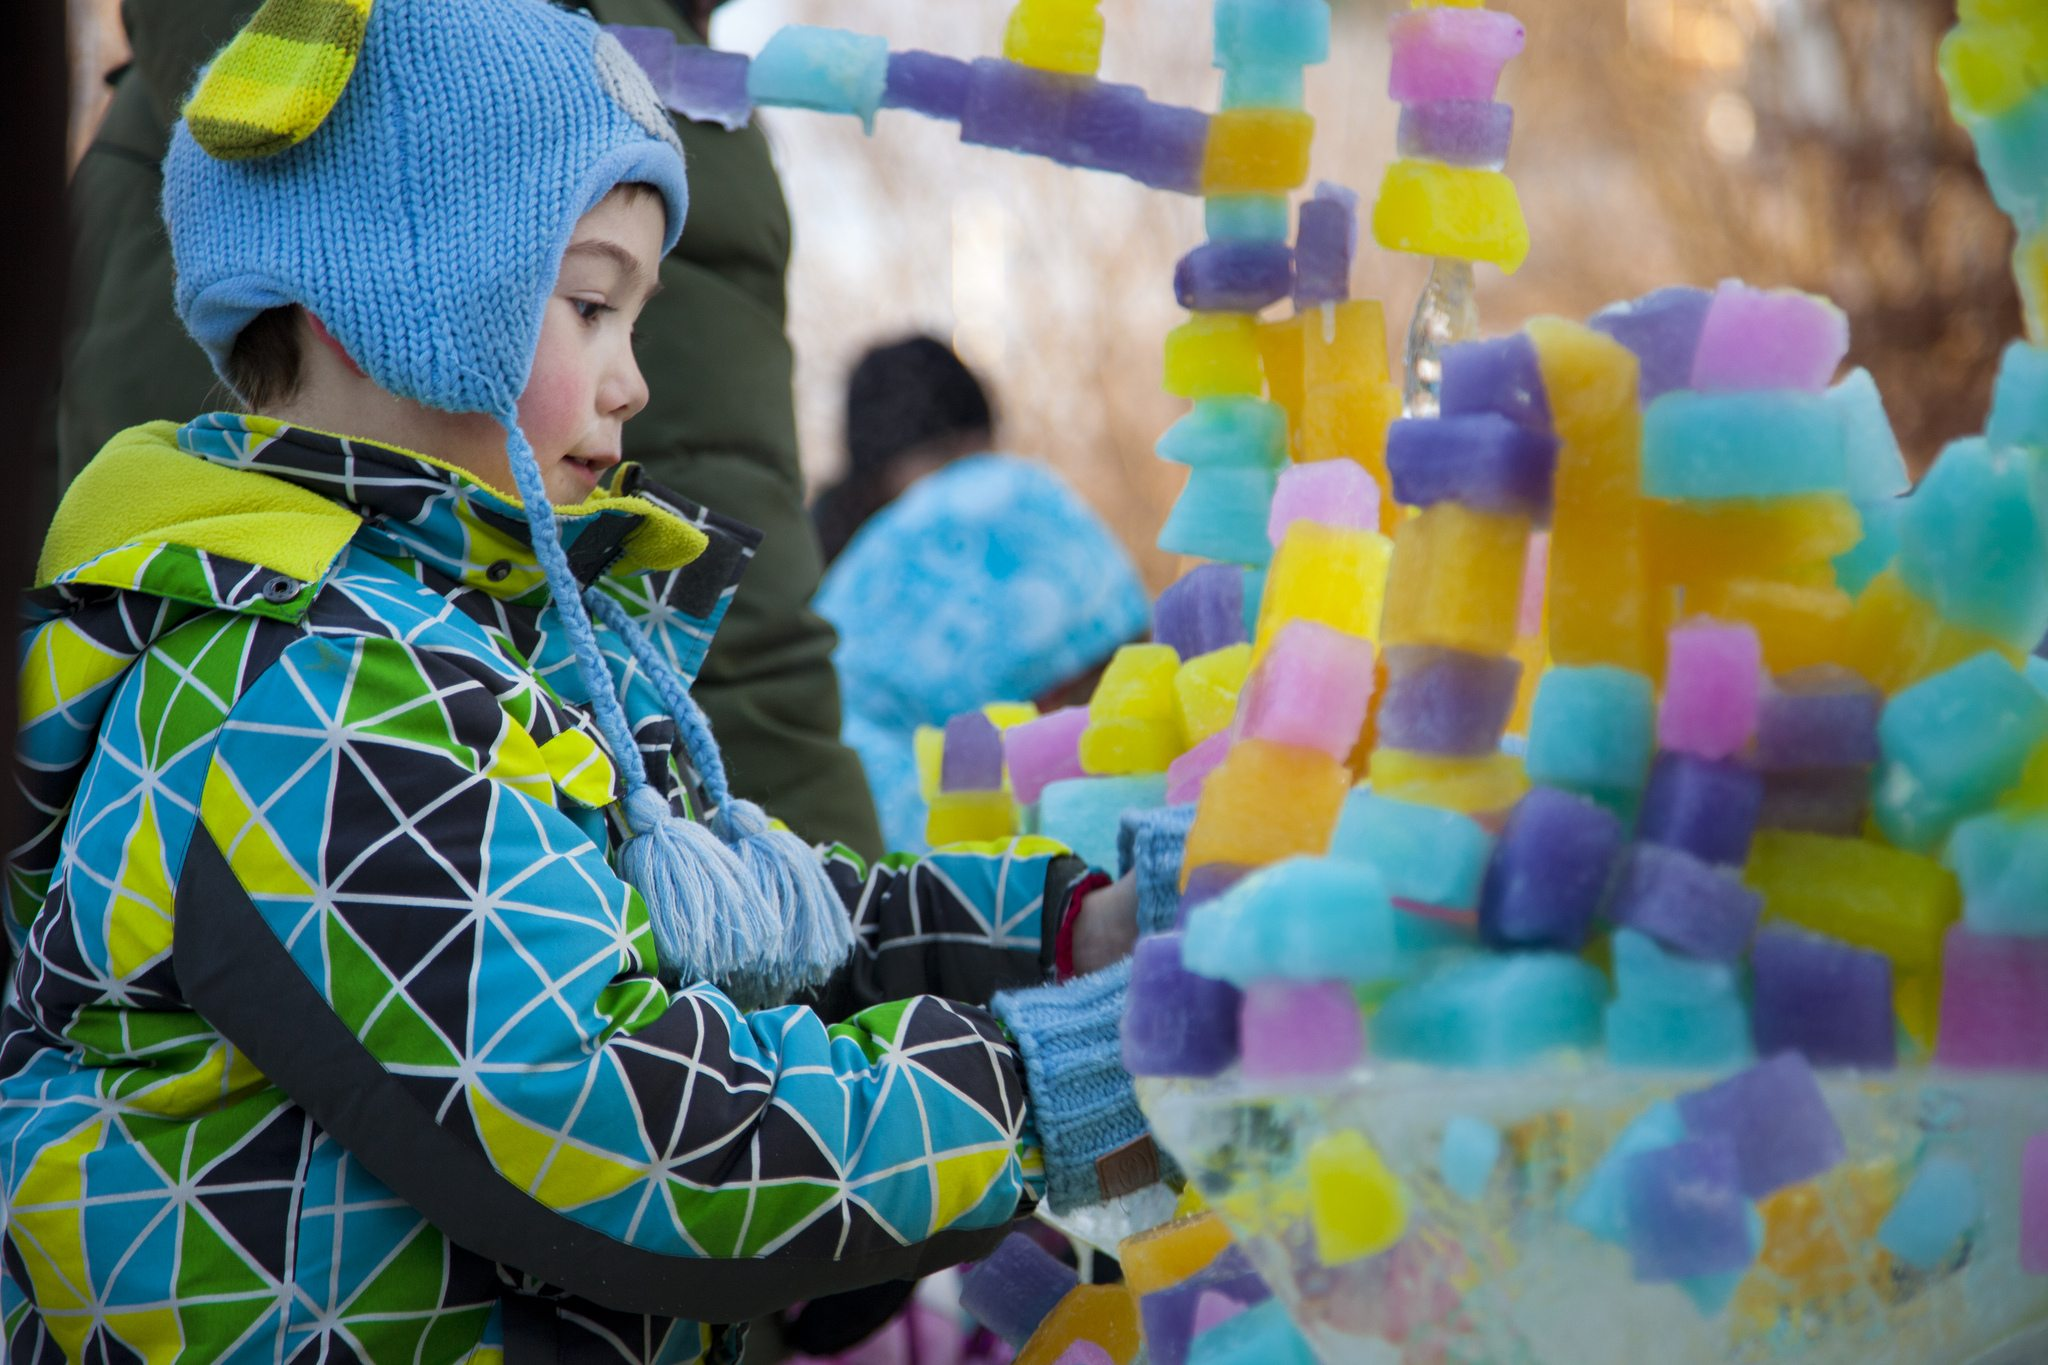 Fun at Crystal Garden in Confederation Park. Photo courtesy Canadian Heritage.